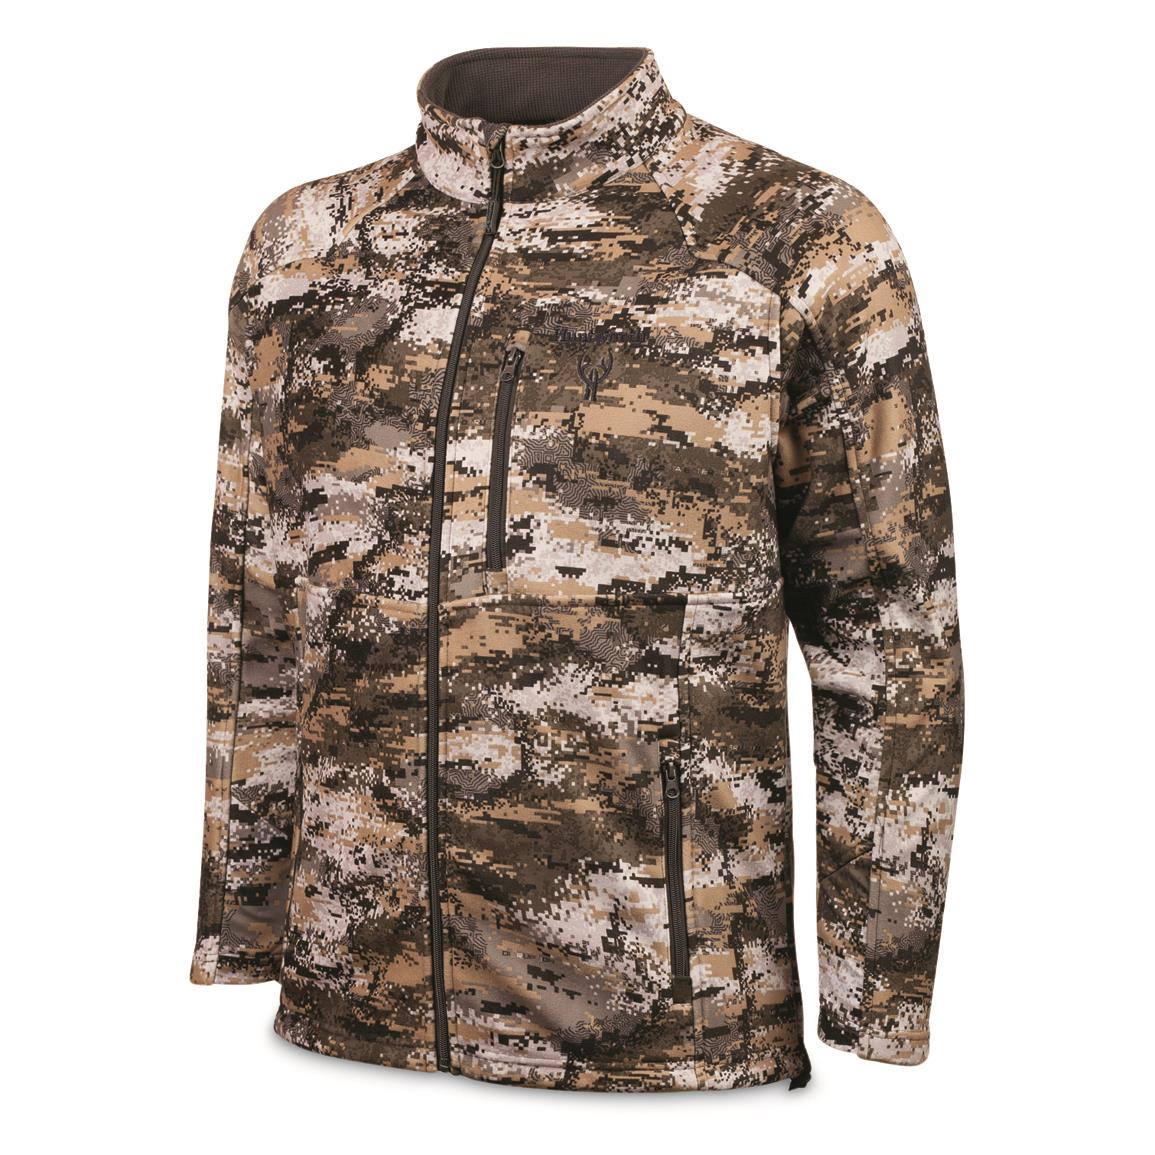 Huntworth Men's Midweight Softshell Hunting Jacket, Disruption